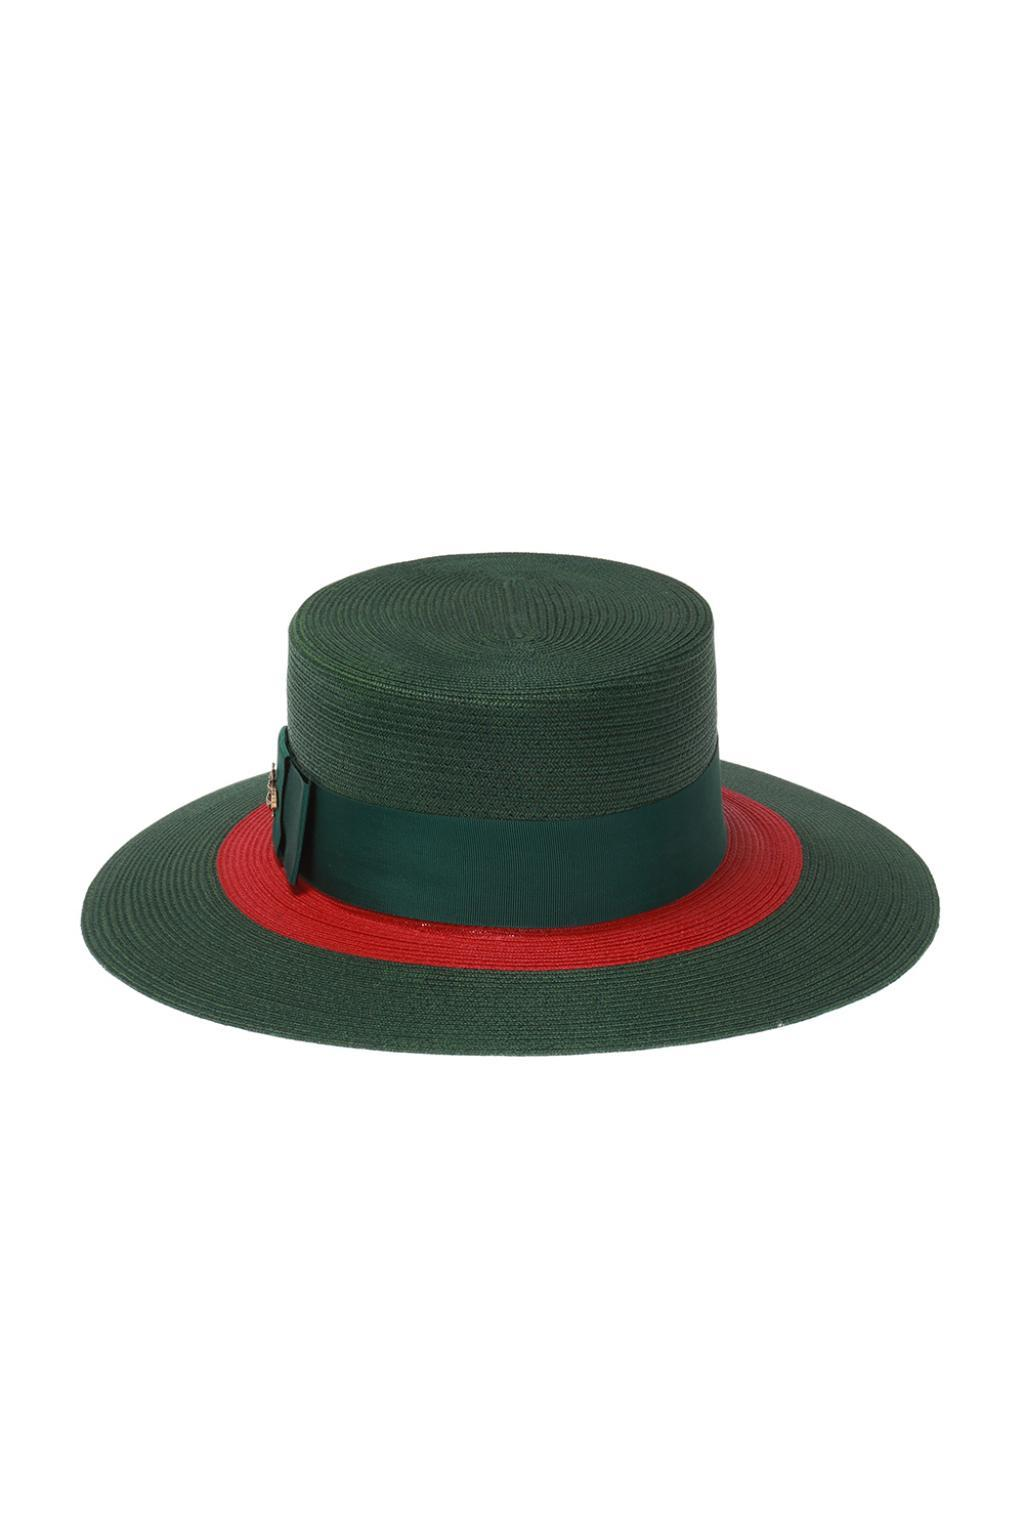 460260c8 Gucci Web Straw Hat in Green - Save 22% - Lyst